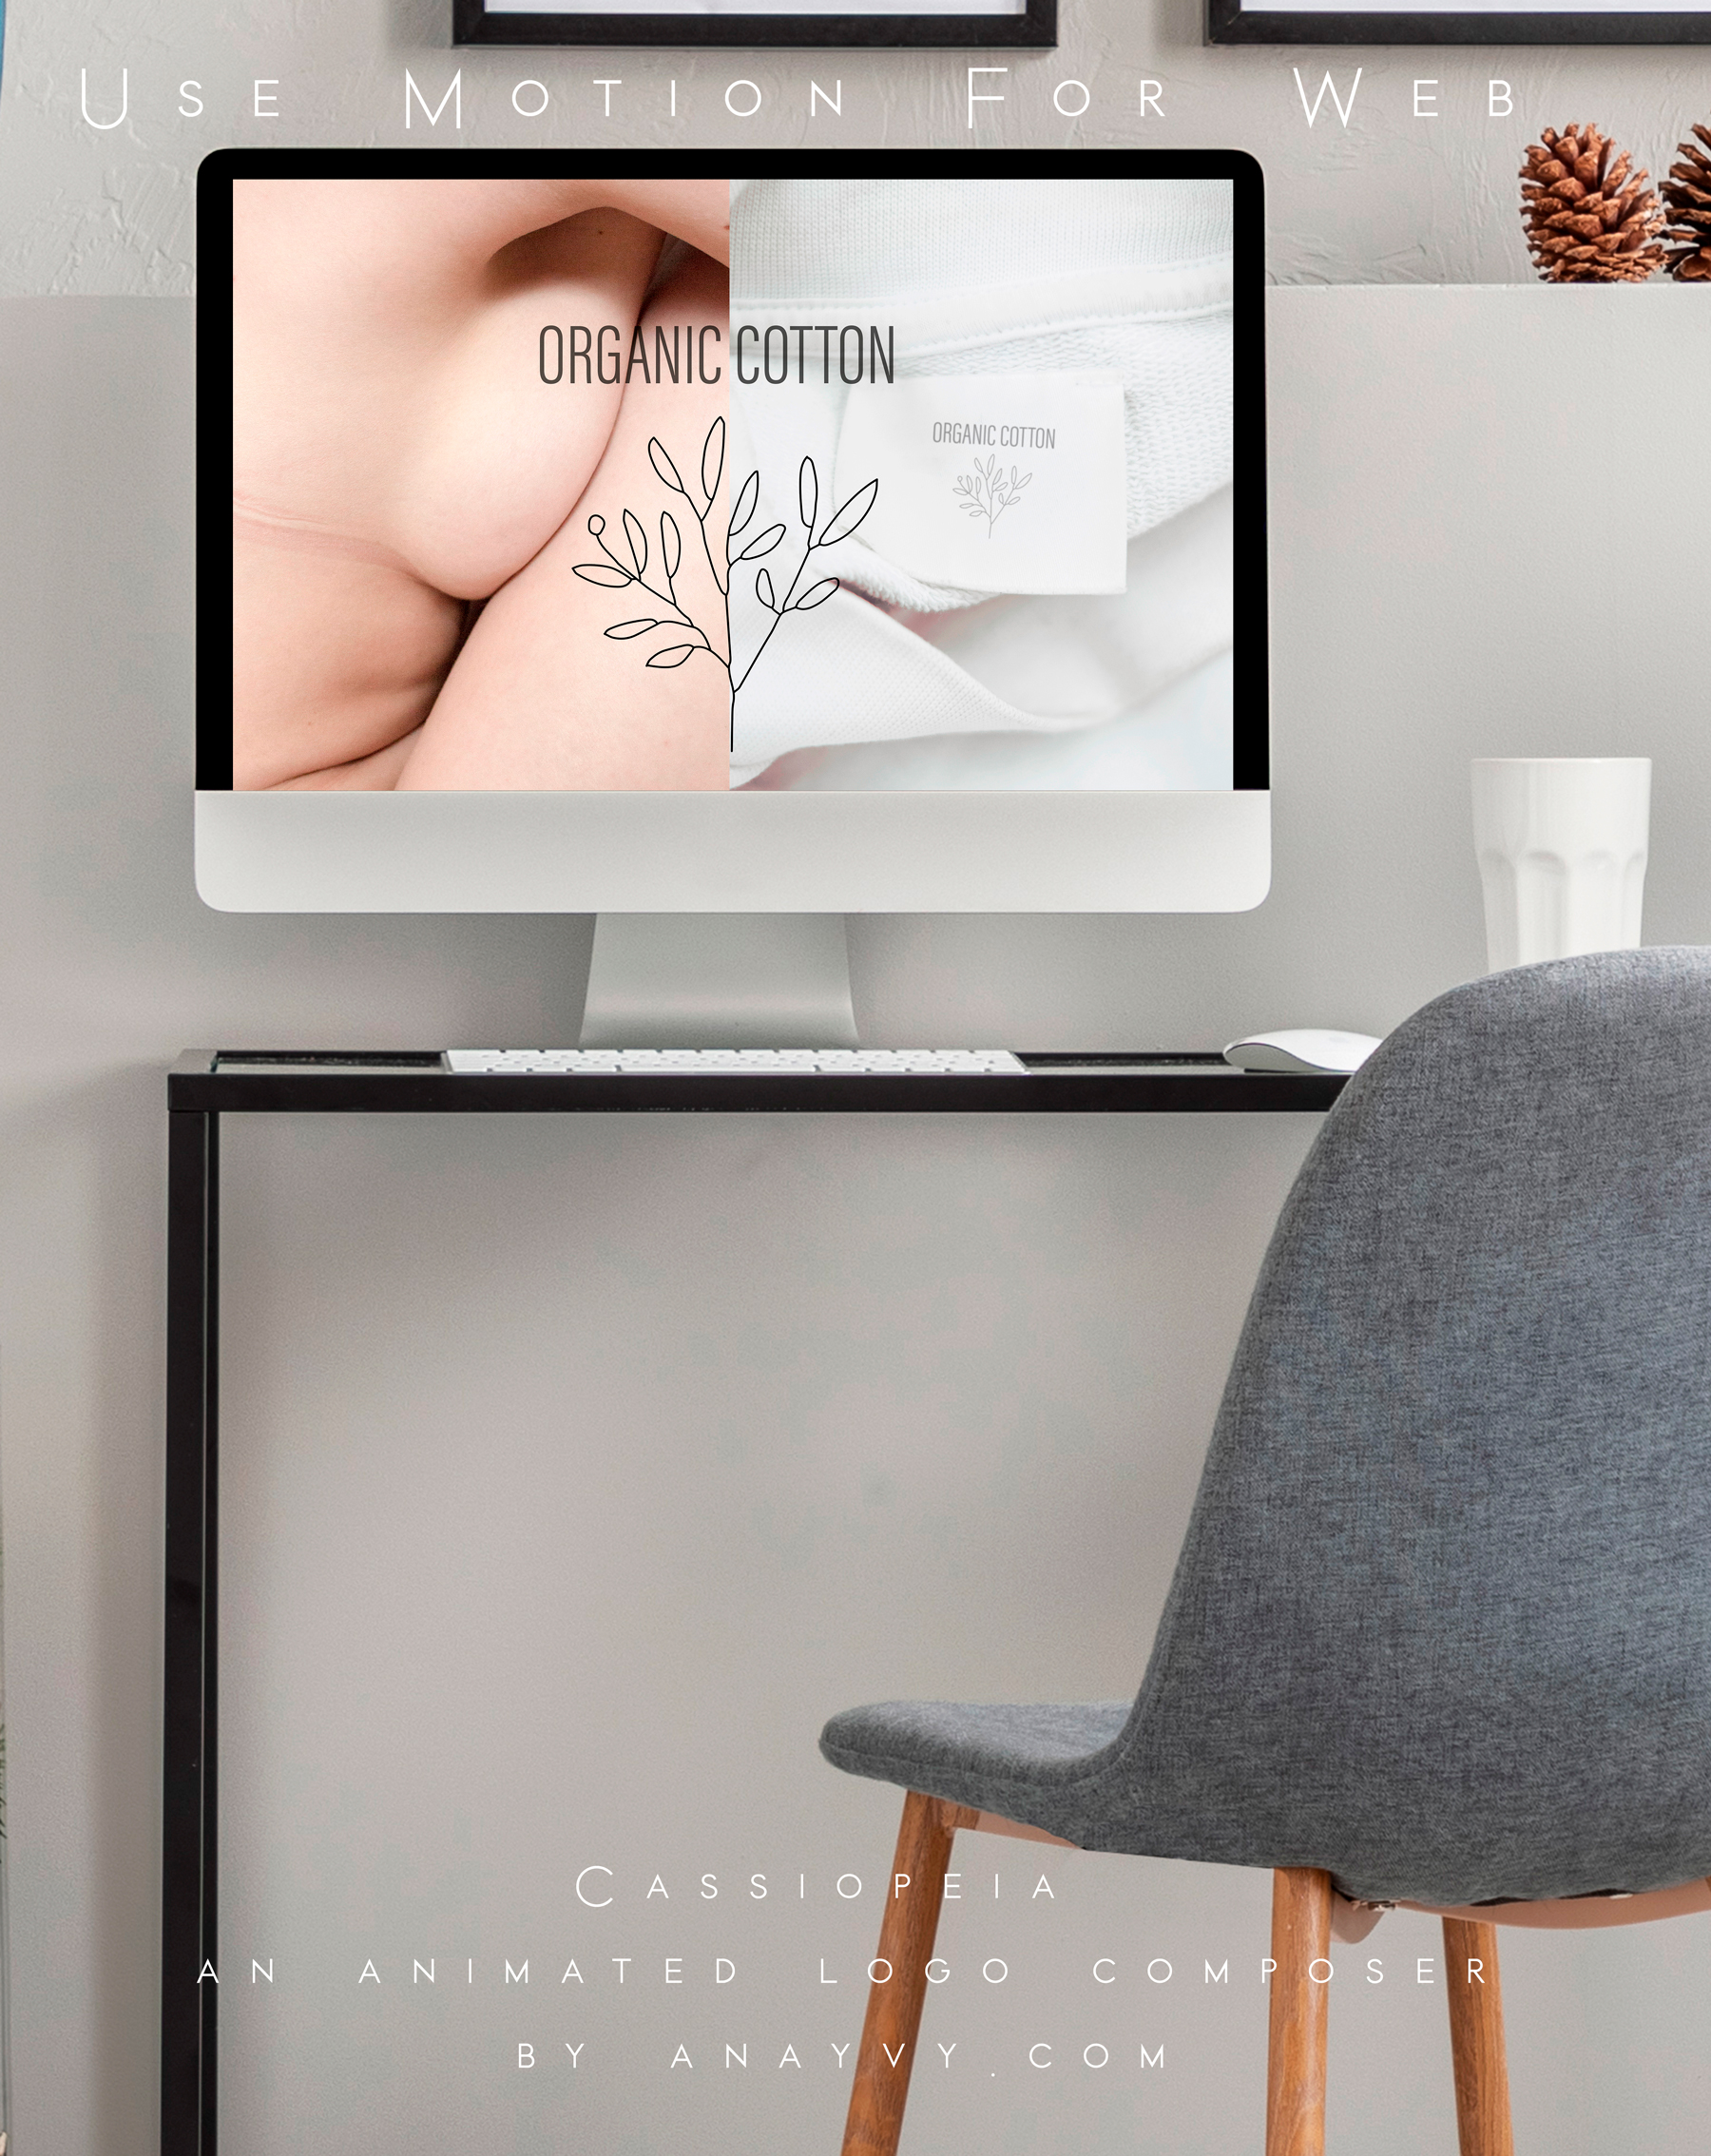 Cassiopeia-logo-design-animation-anayvy-motion-vintage-hand-greenery-apothecary-Workspaces_01-2